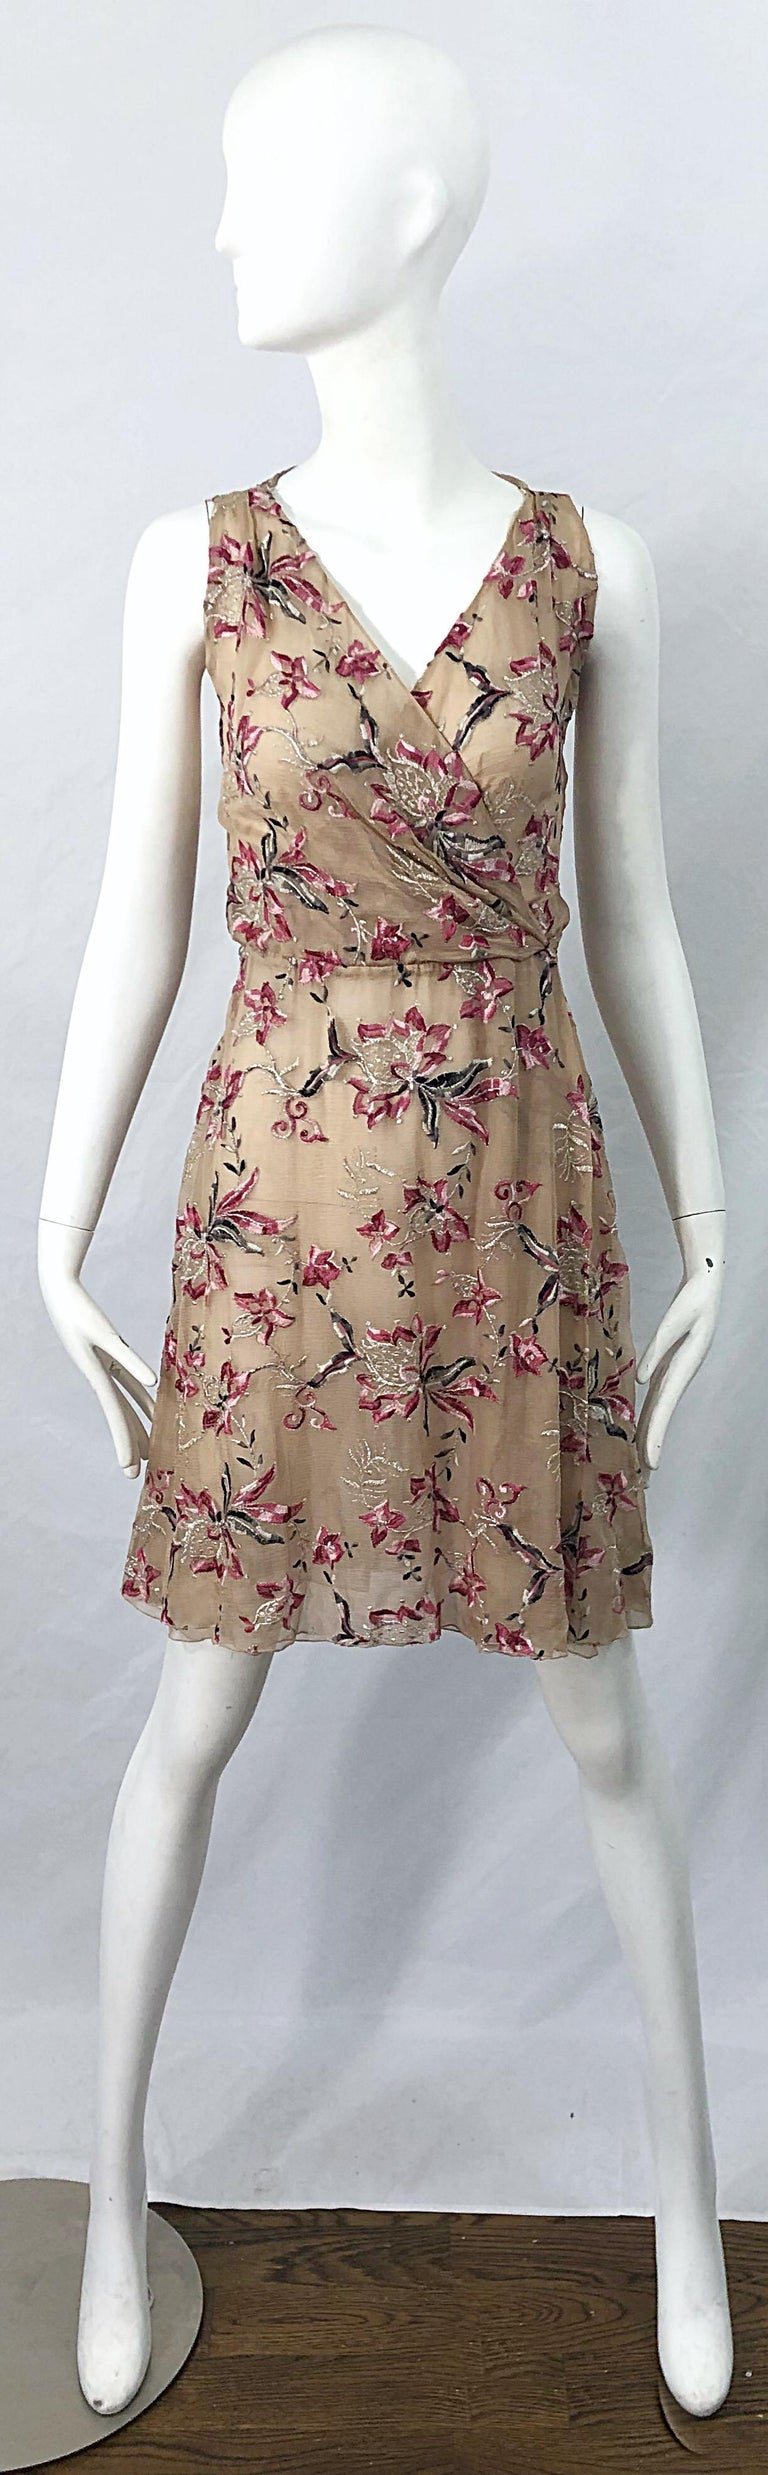 Brown Beautiful 1990s Valentino Nude Silk Chiffon Semi Sheer Size 6 Embroidered Dress For Sale